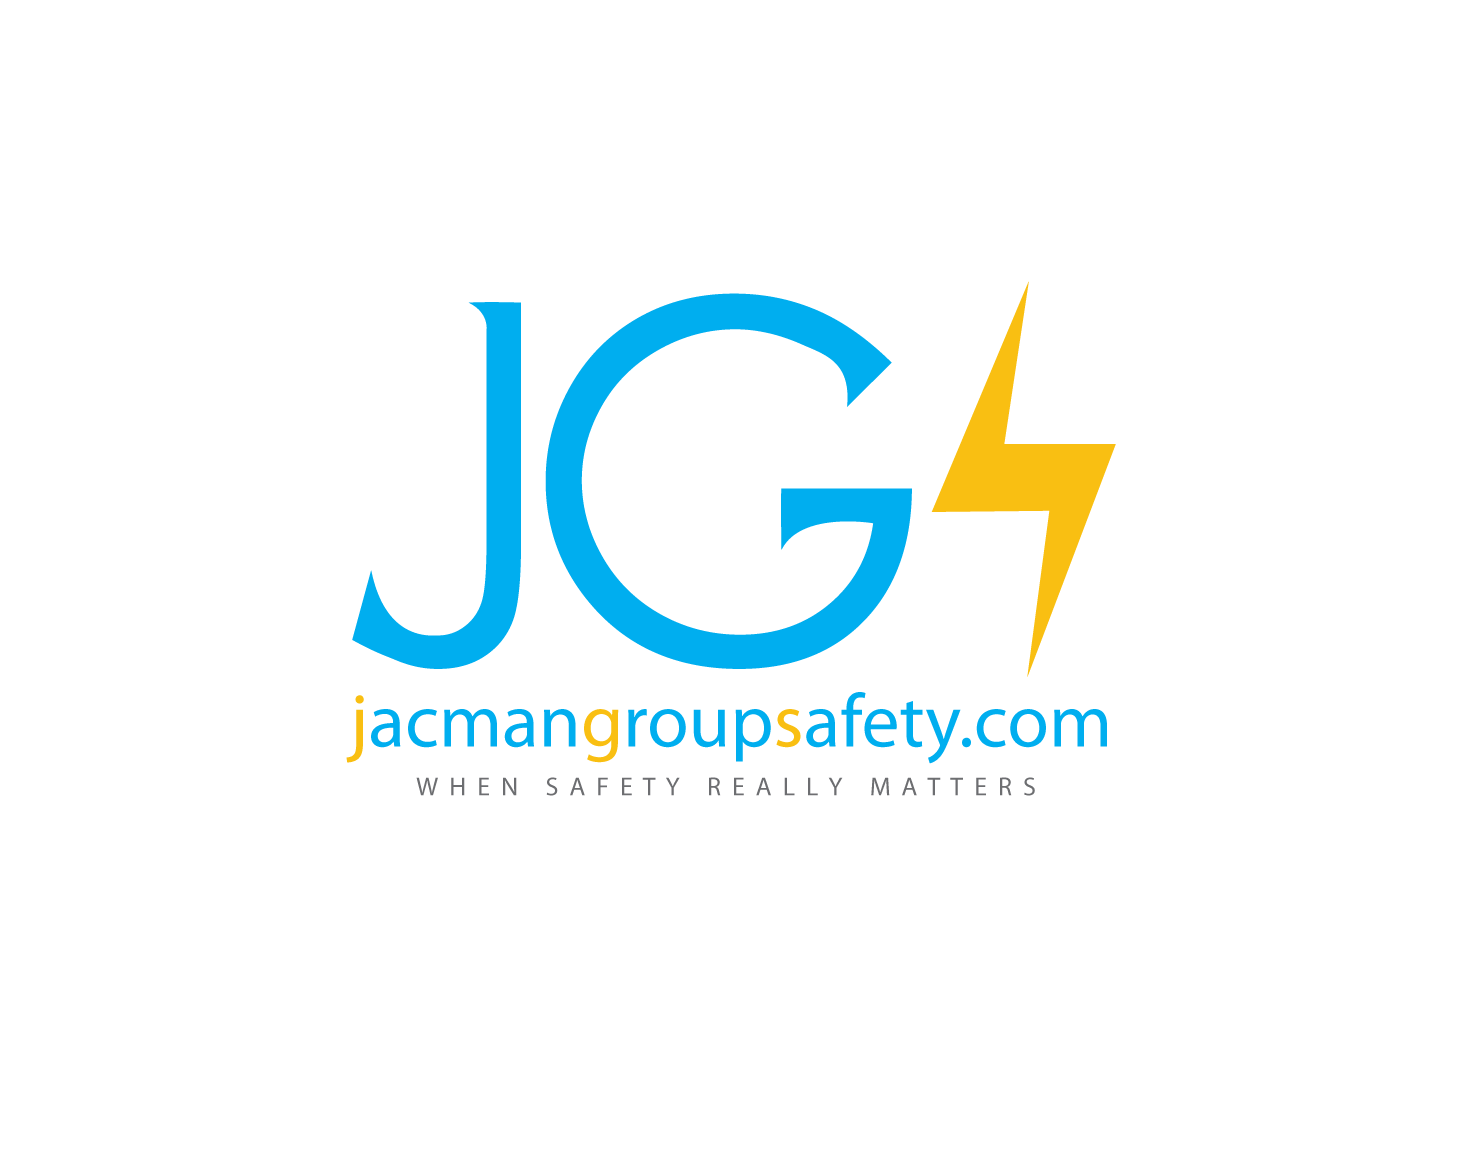 Logo Design by Roy Ferre - Entry No. 150 in the Logo Design Contest The Jacman Group Logo Design.